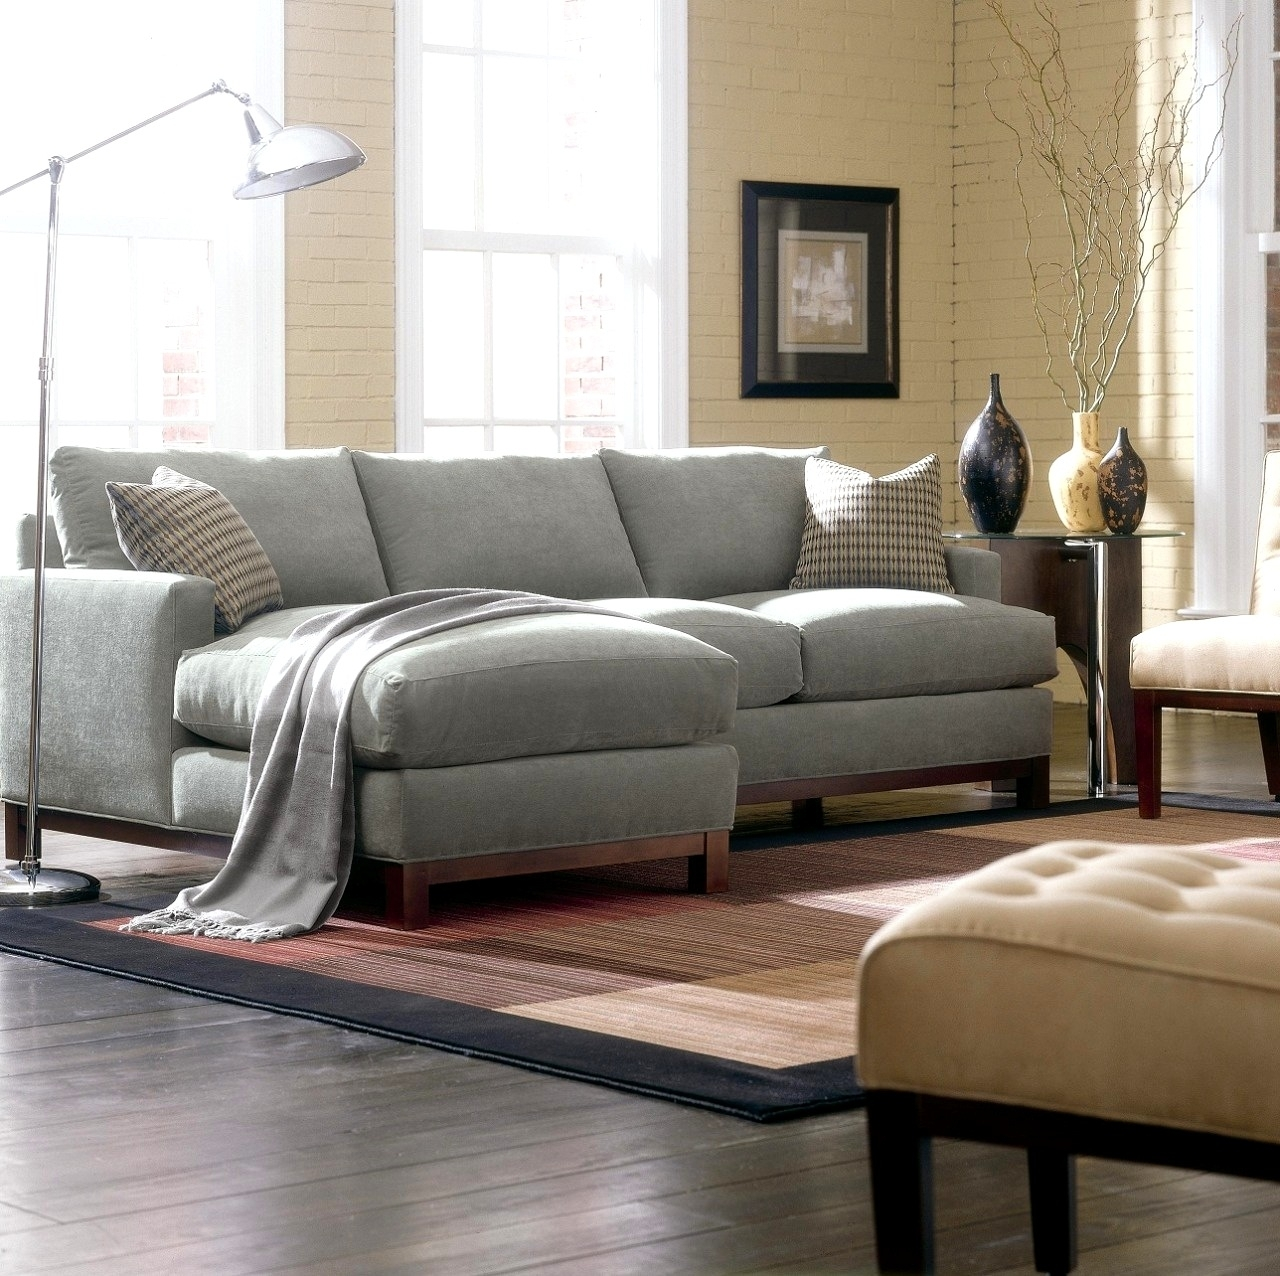 10 Best Room And Board Sectional Sofas